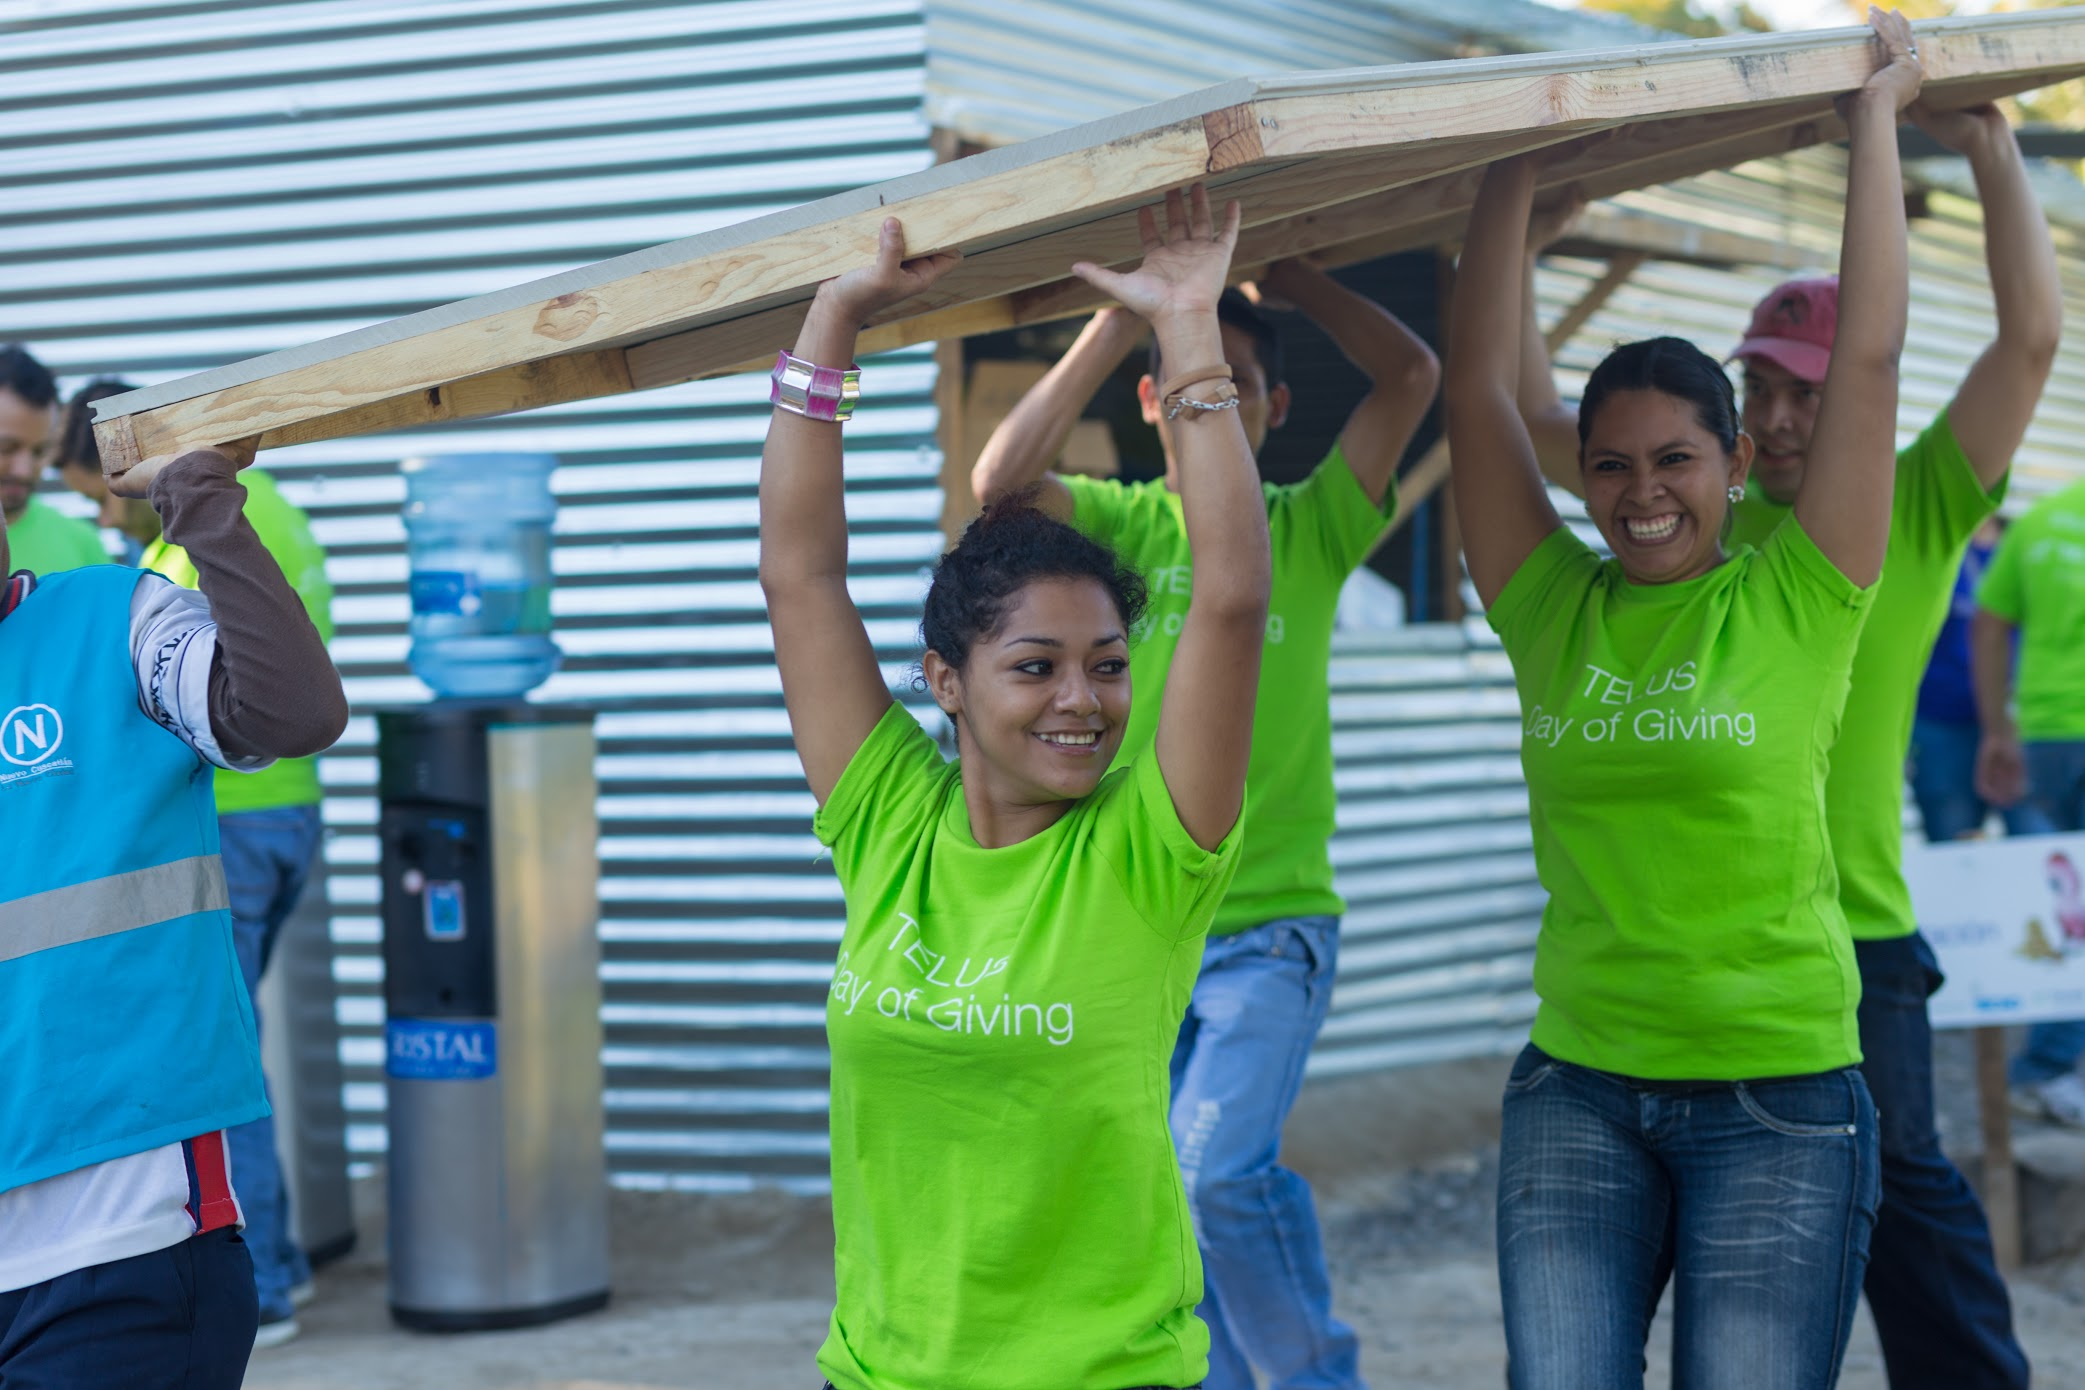 We have donated over $396 million to charities and contributed over 6 million service hours through our Community Boards and volunteering programs around the world.